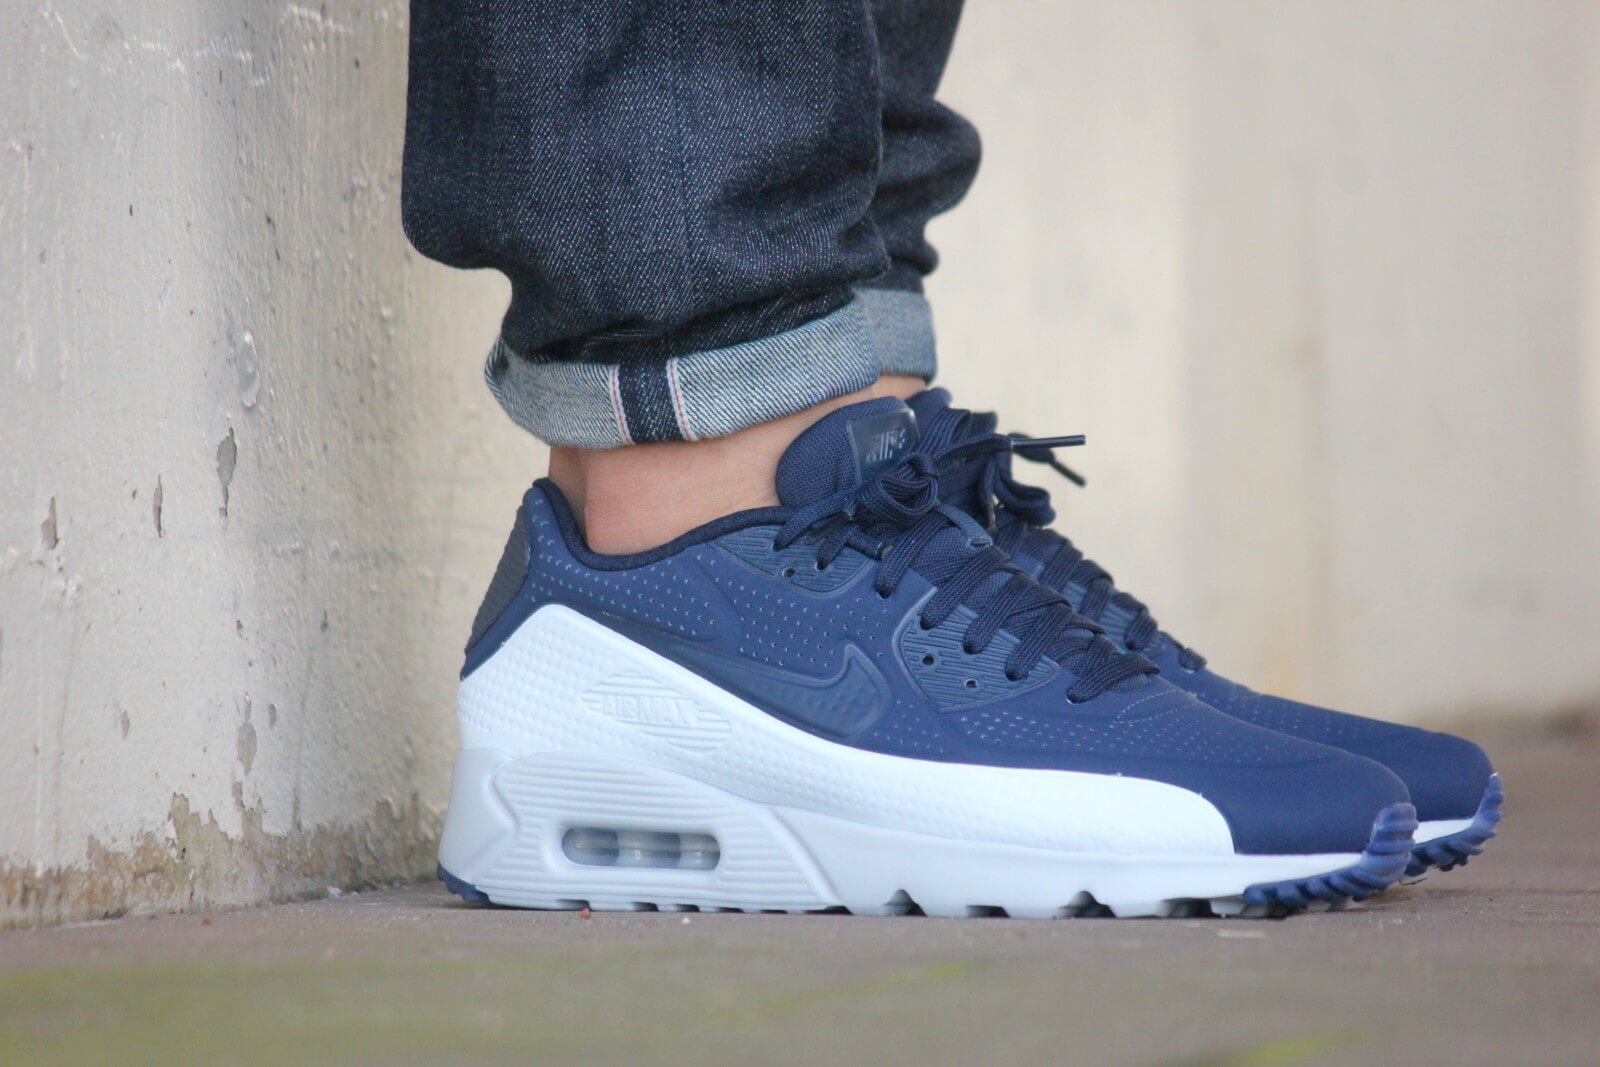 Nike Air Max 90 Ultra Moire Obsidian Where To Buy 819477